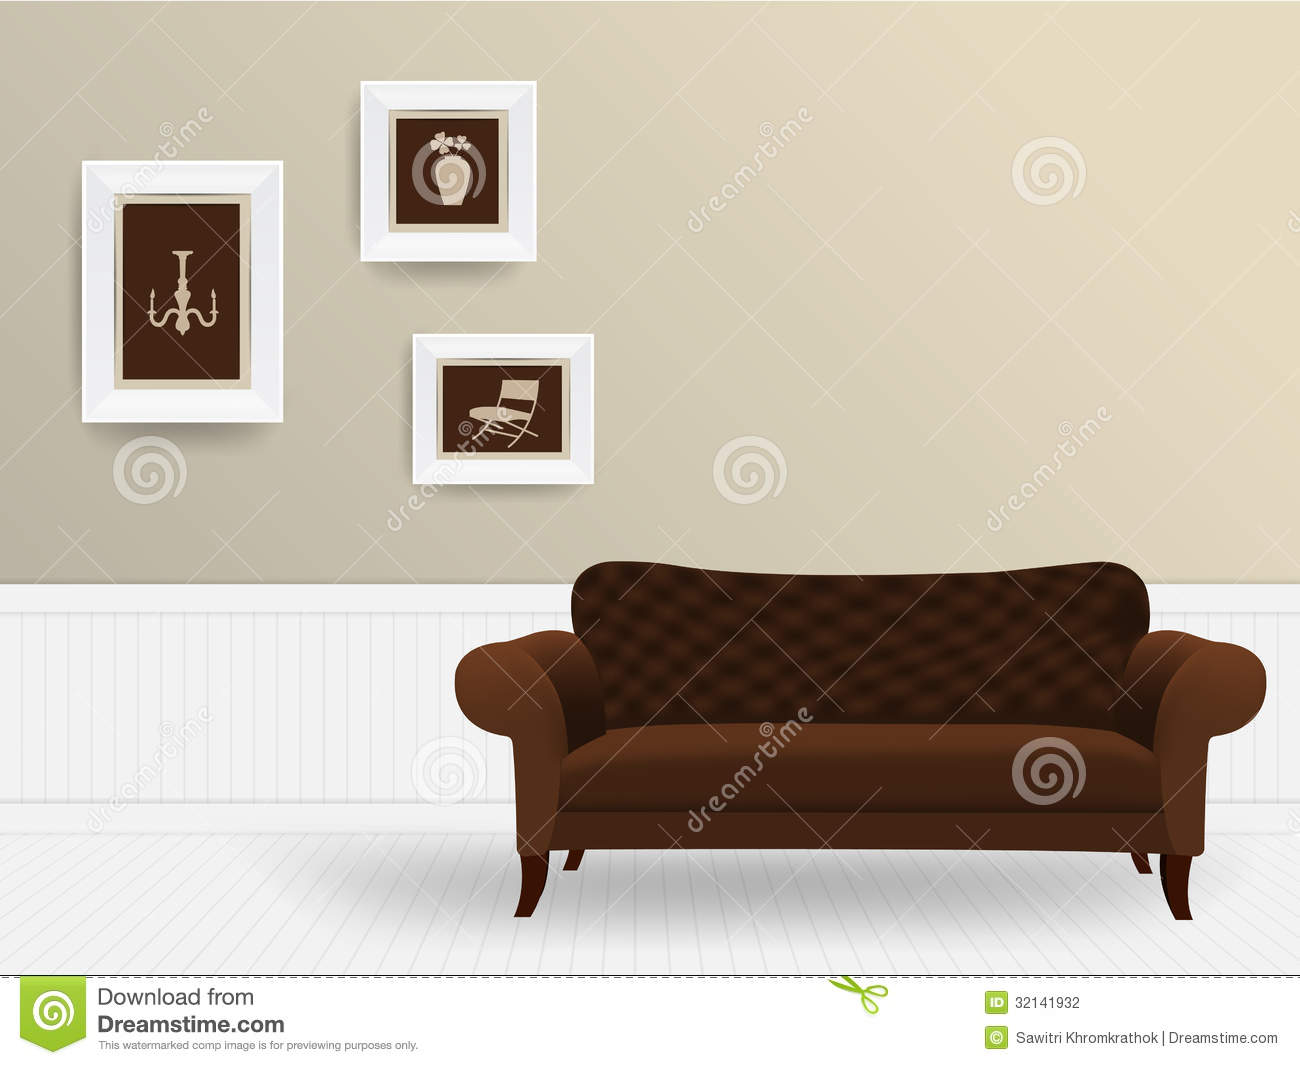 living room template vector living room interior concept stock vector 11250